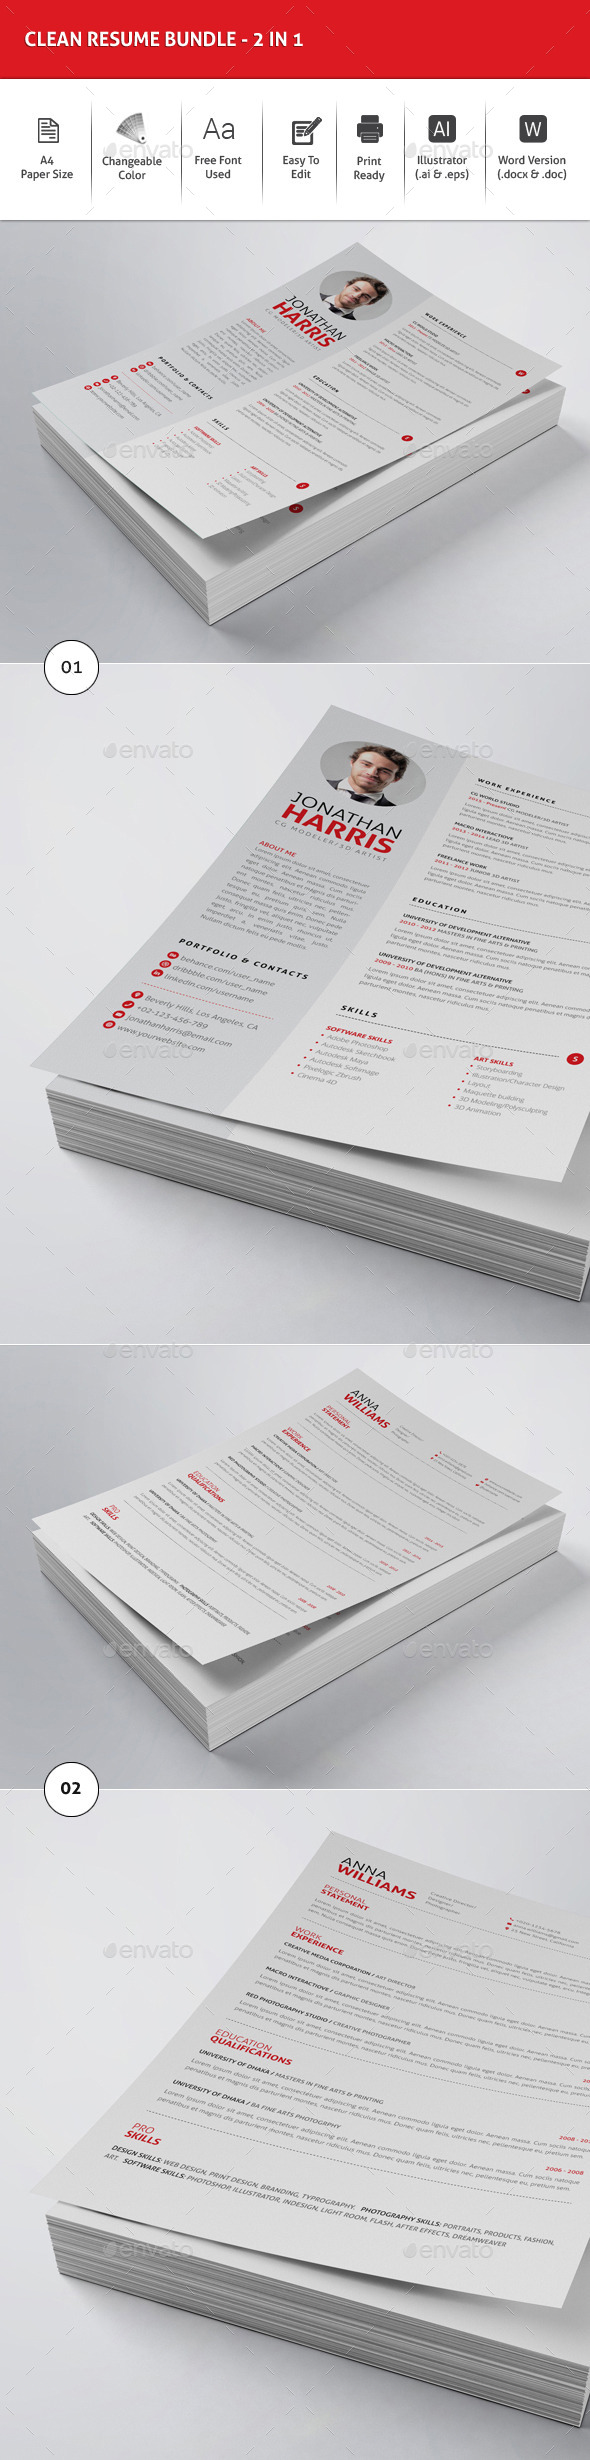 Clean Resume Bundle - 2in1 - Resumes Stationery